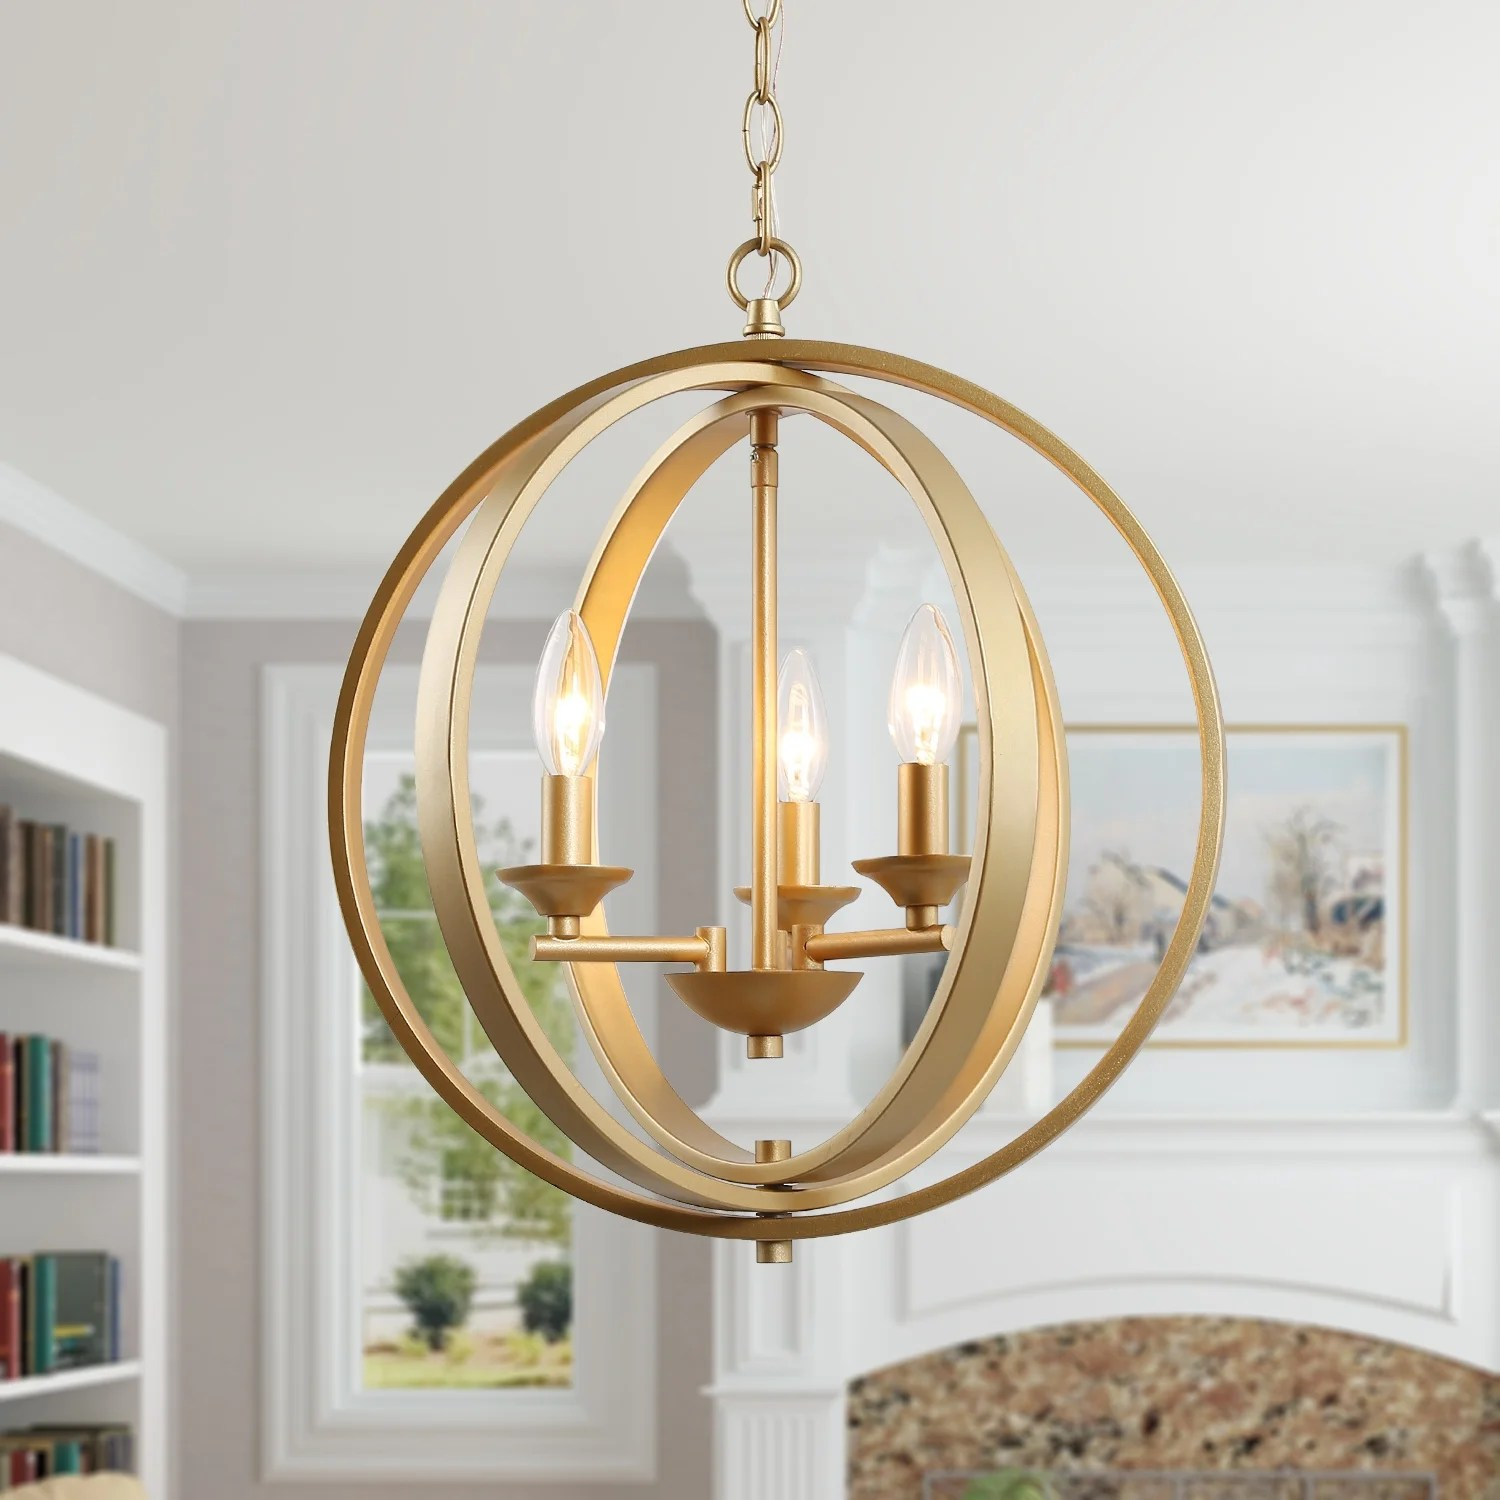 Shop Glam Gold Chandelier With 3 Lights Ceiling Hanging Pendant Lighting For Kitchen Island W15 5 X H18 W15 5 X H18 Overstock 29396797